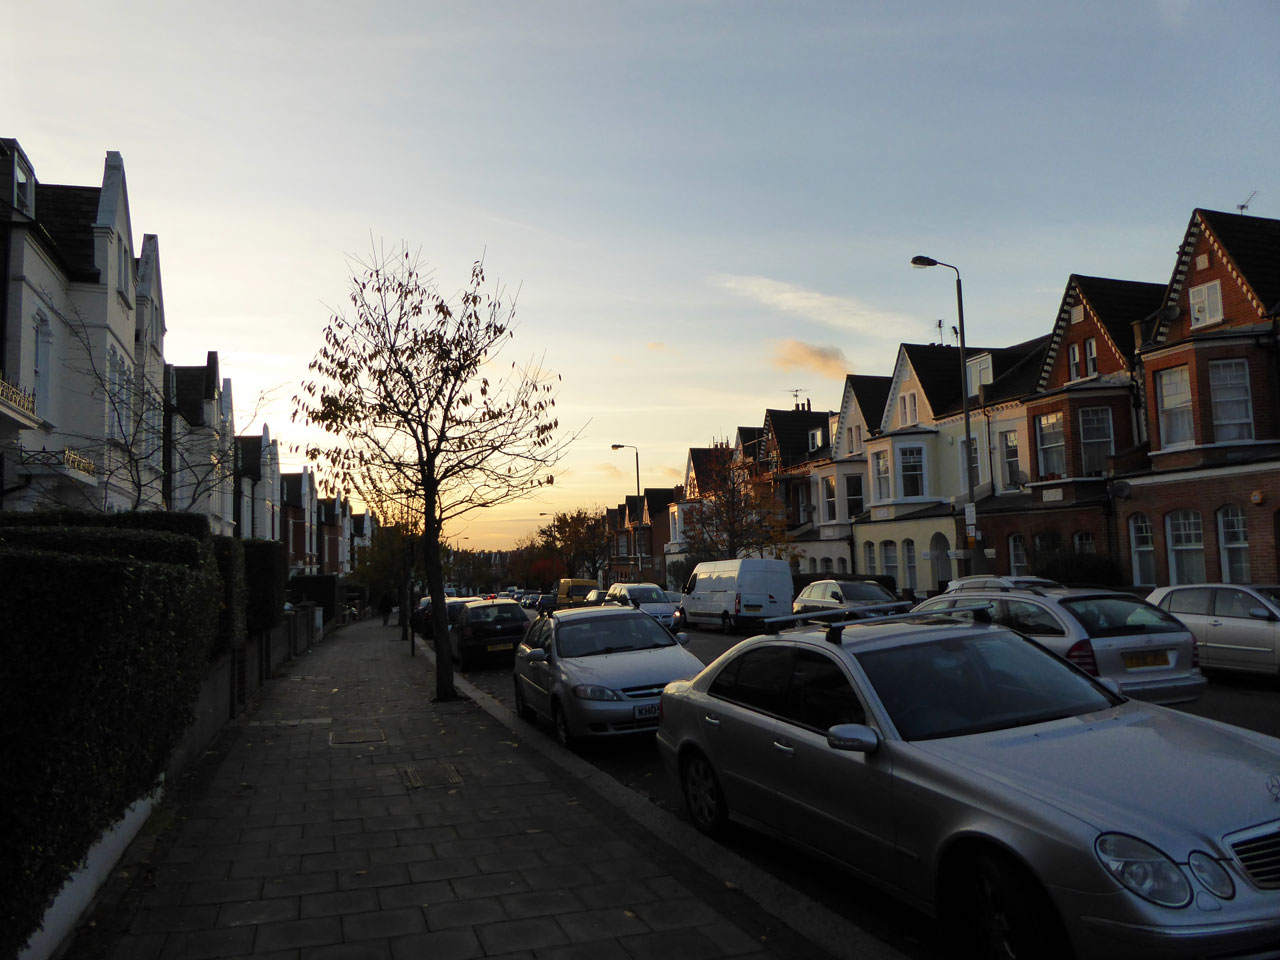 Sunset over Ritherdon Road in Balham, London